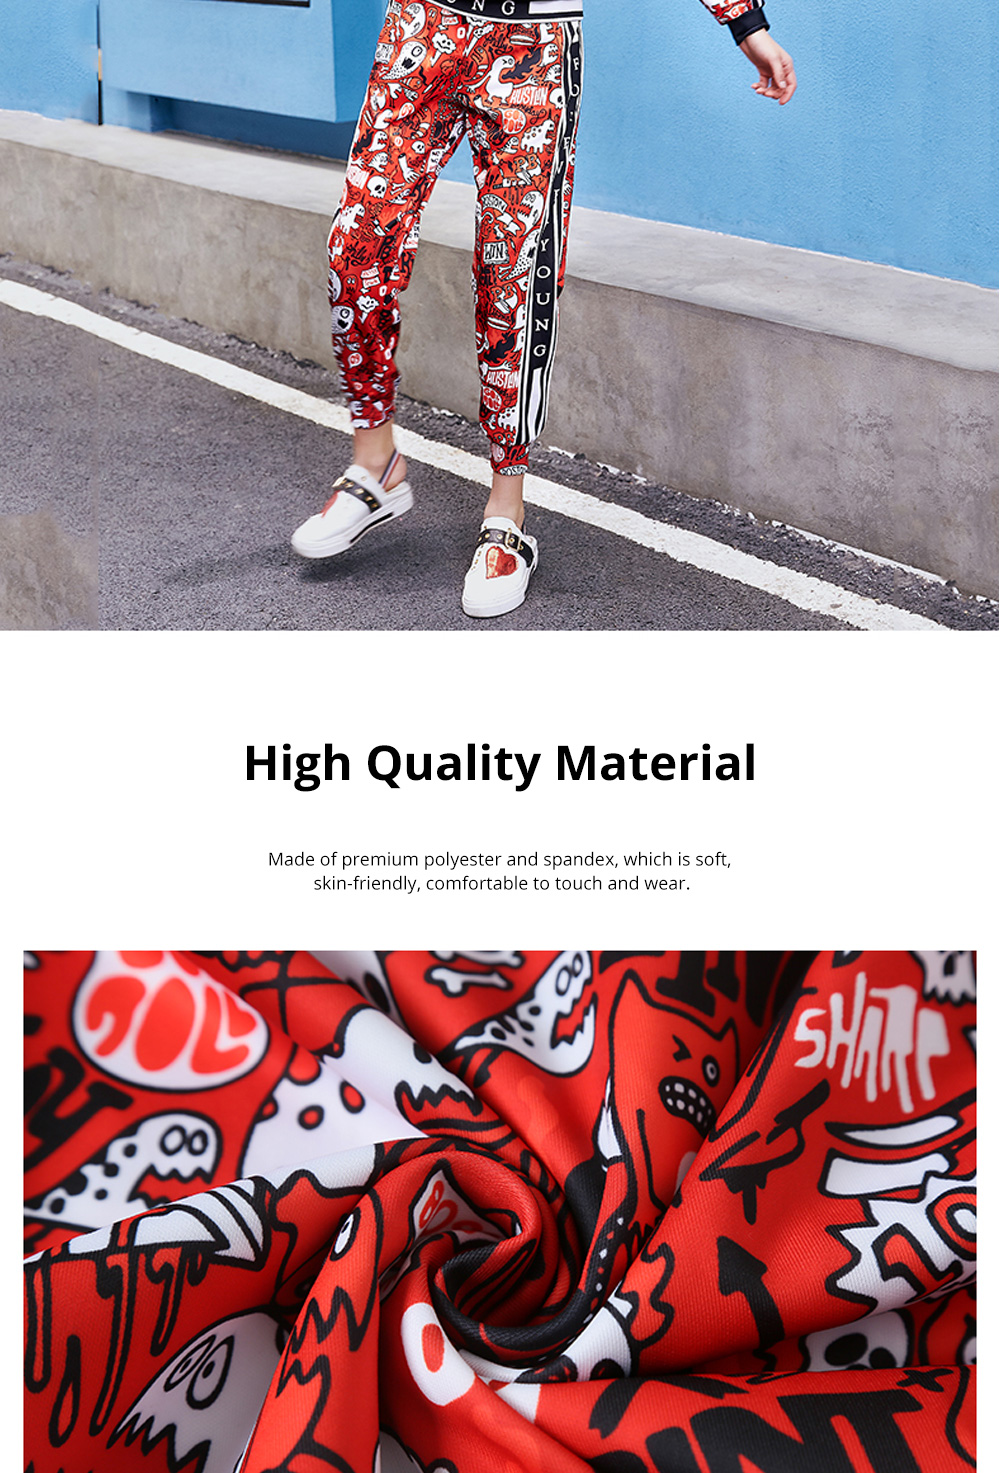 Women's Tracksuit with Vibrant Color 2 Piece Sets Casual Hoodie Suit with Close-Up Sleeve and Leg Openings 3